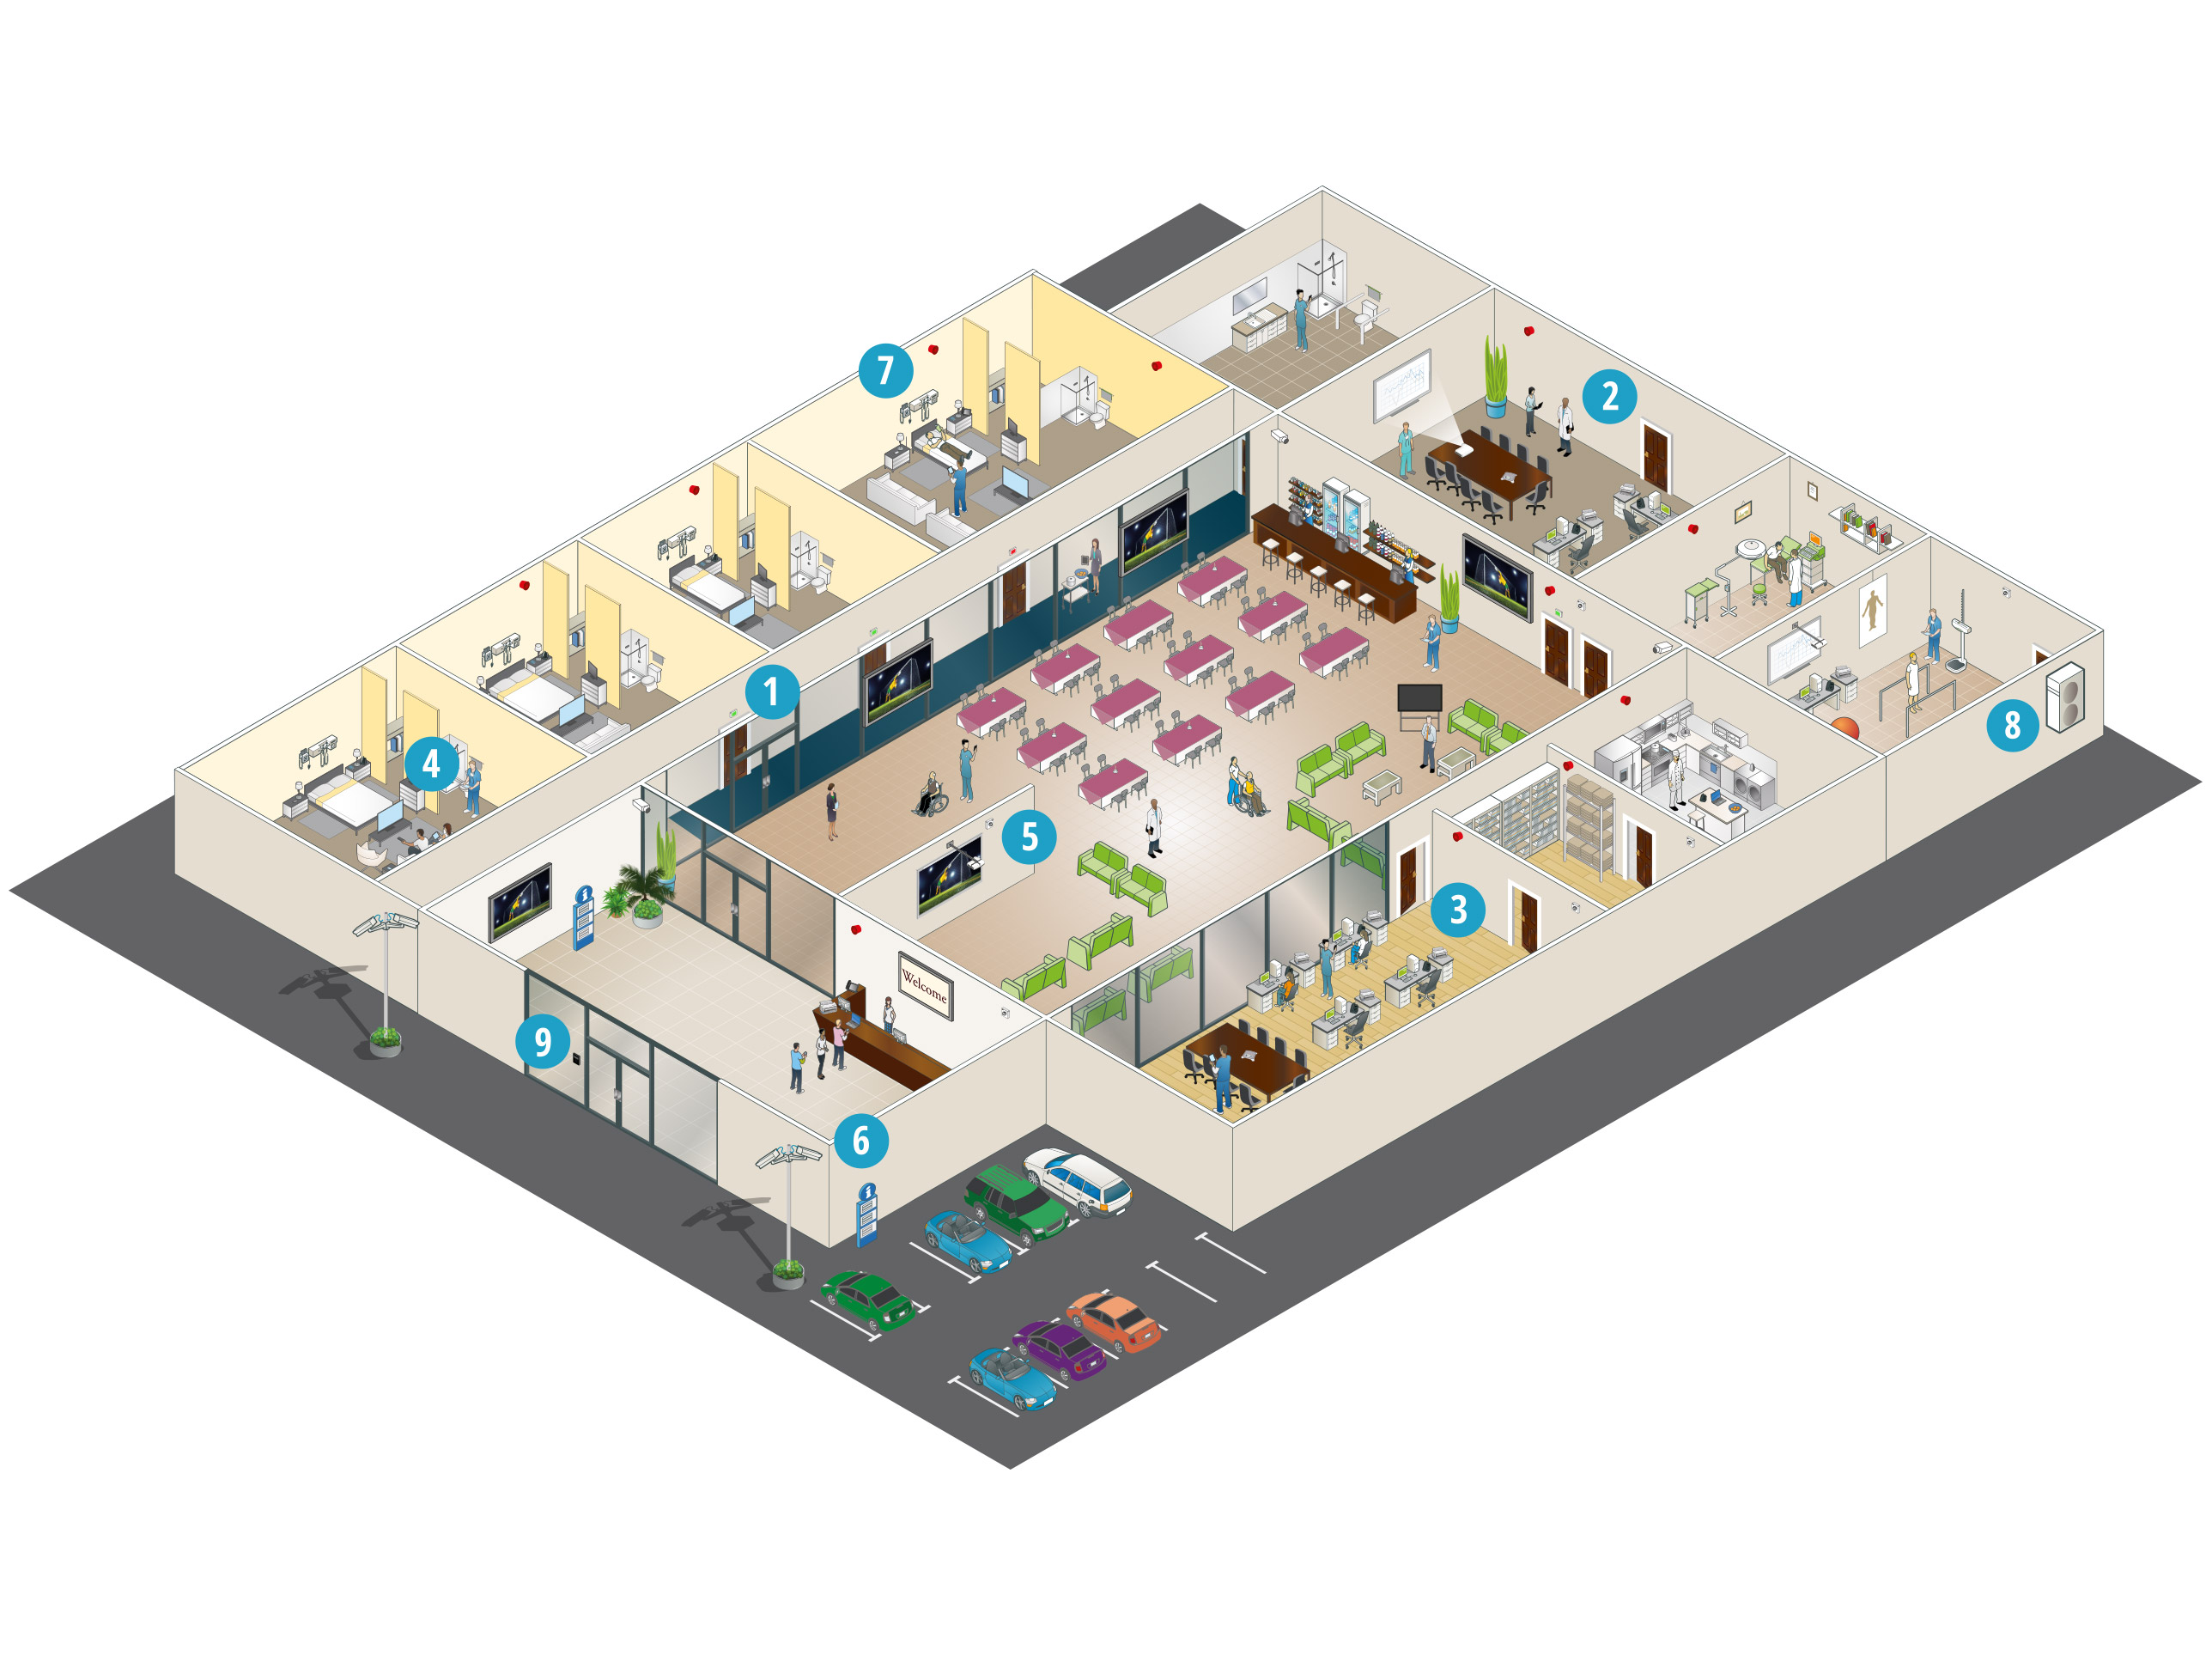 How do Panasonic solutions support care homes?